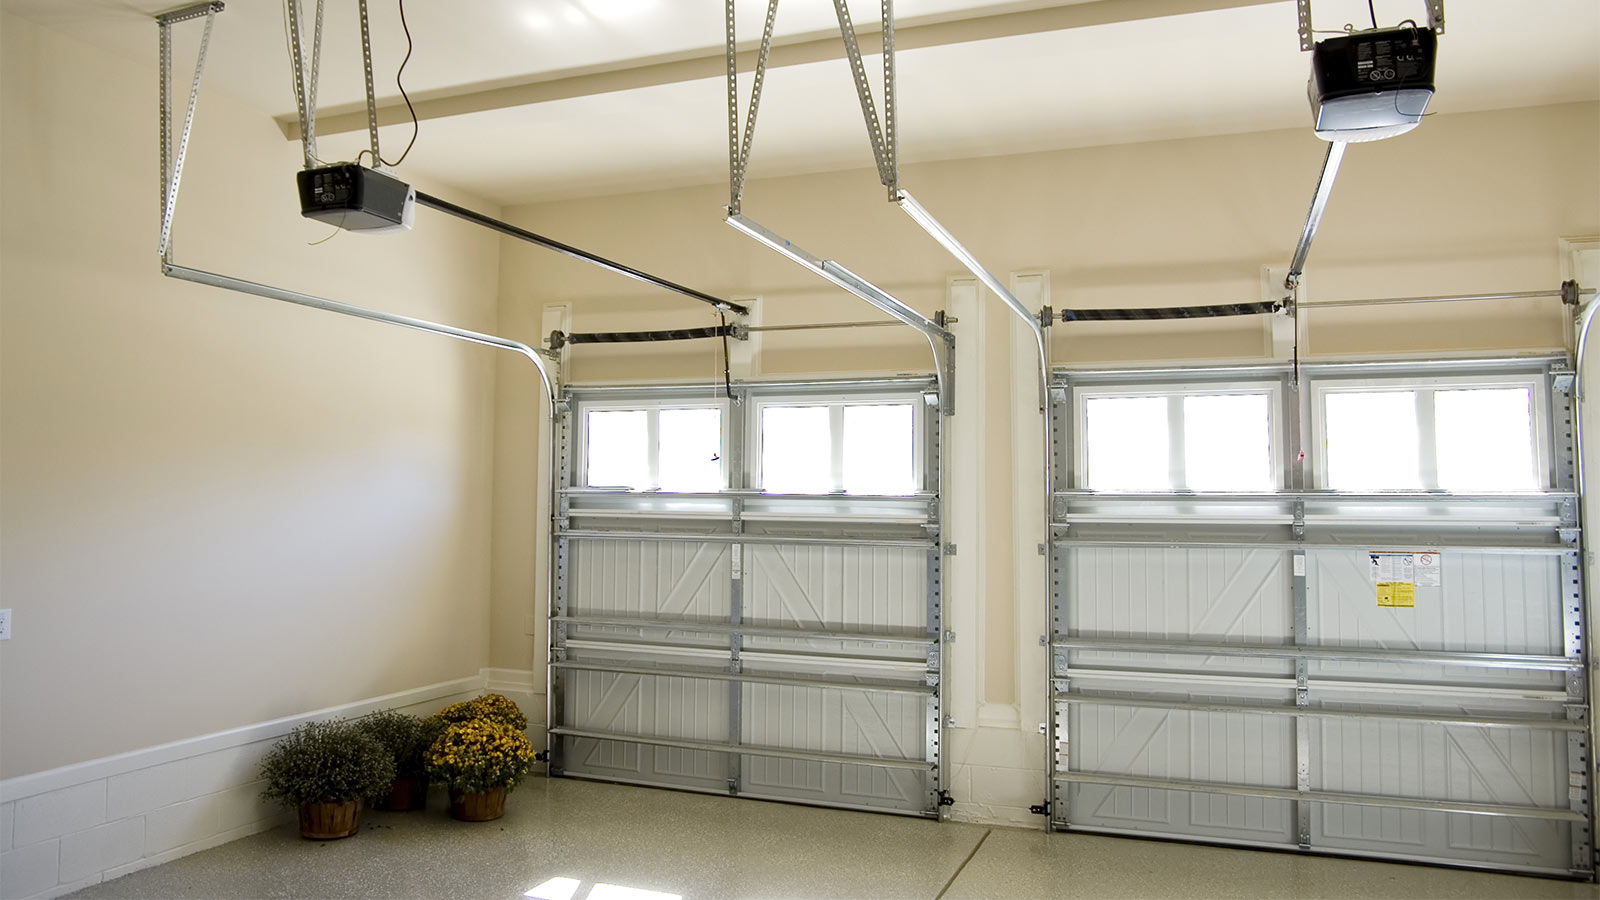 Sectional Garage Doors from Fire Shutters Rayleigh suppliers.